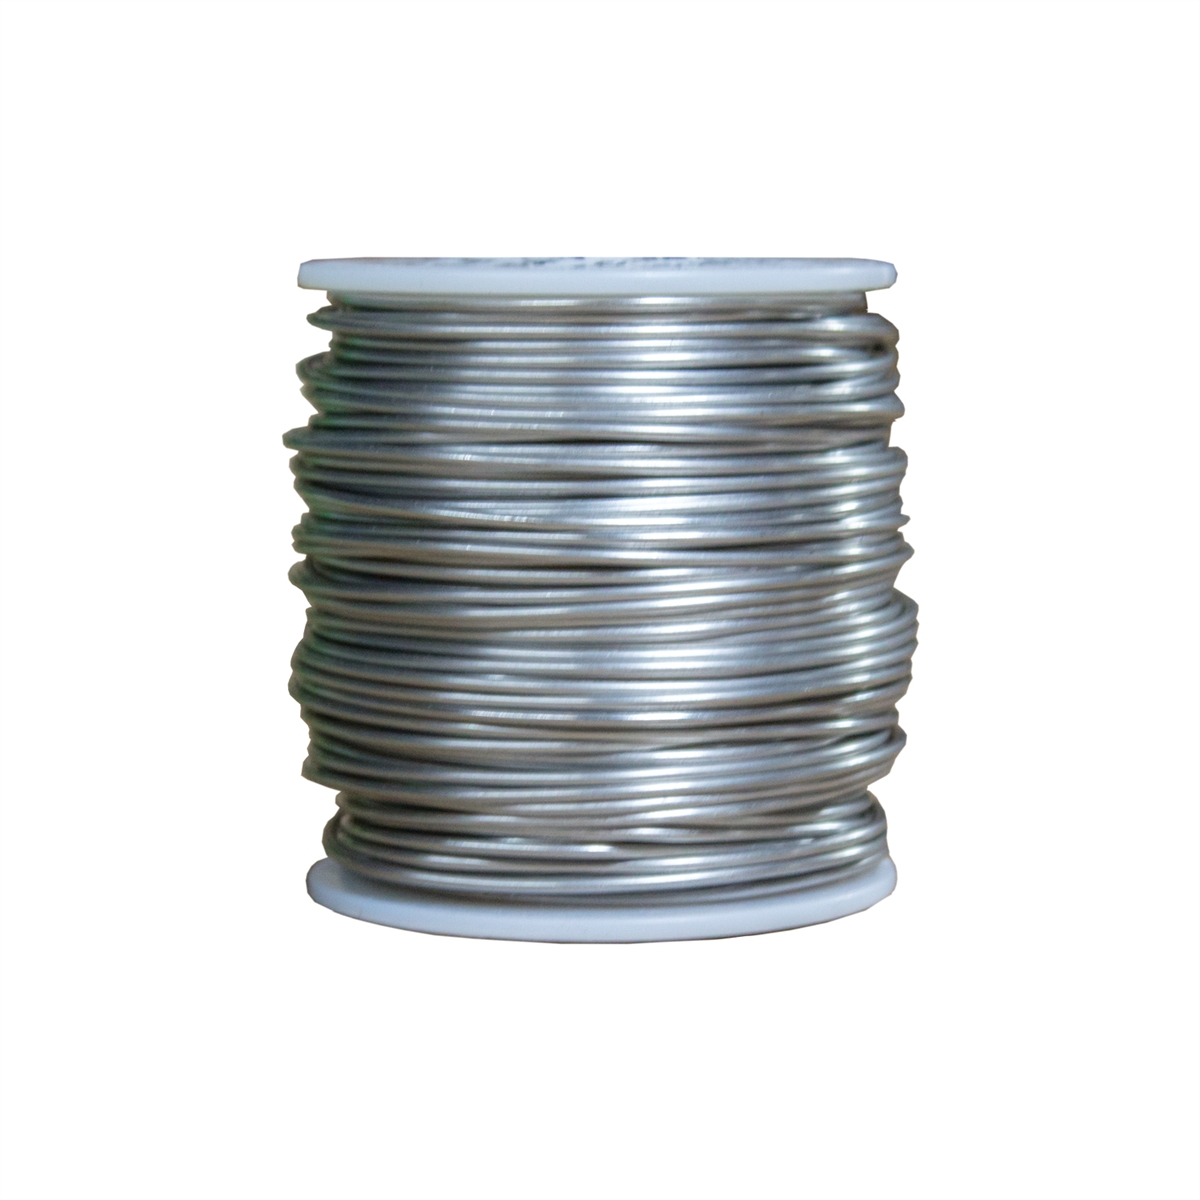 Stainless Steel Safety Wire   Valve and Flange Insulation Accessories